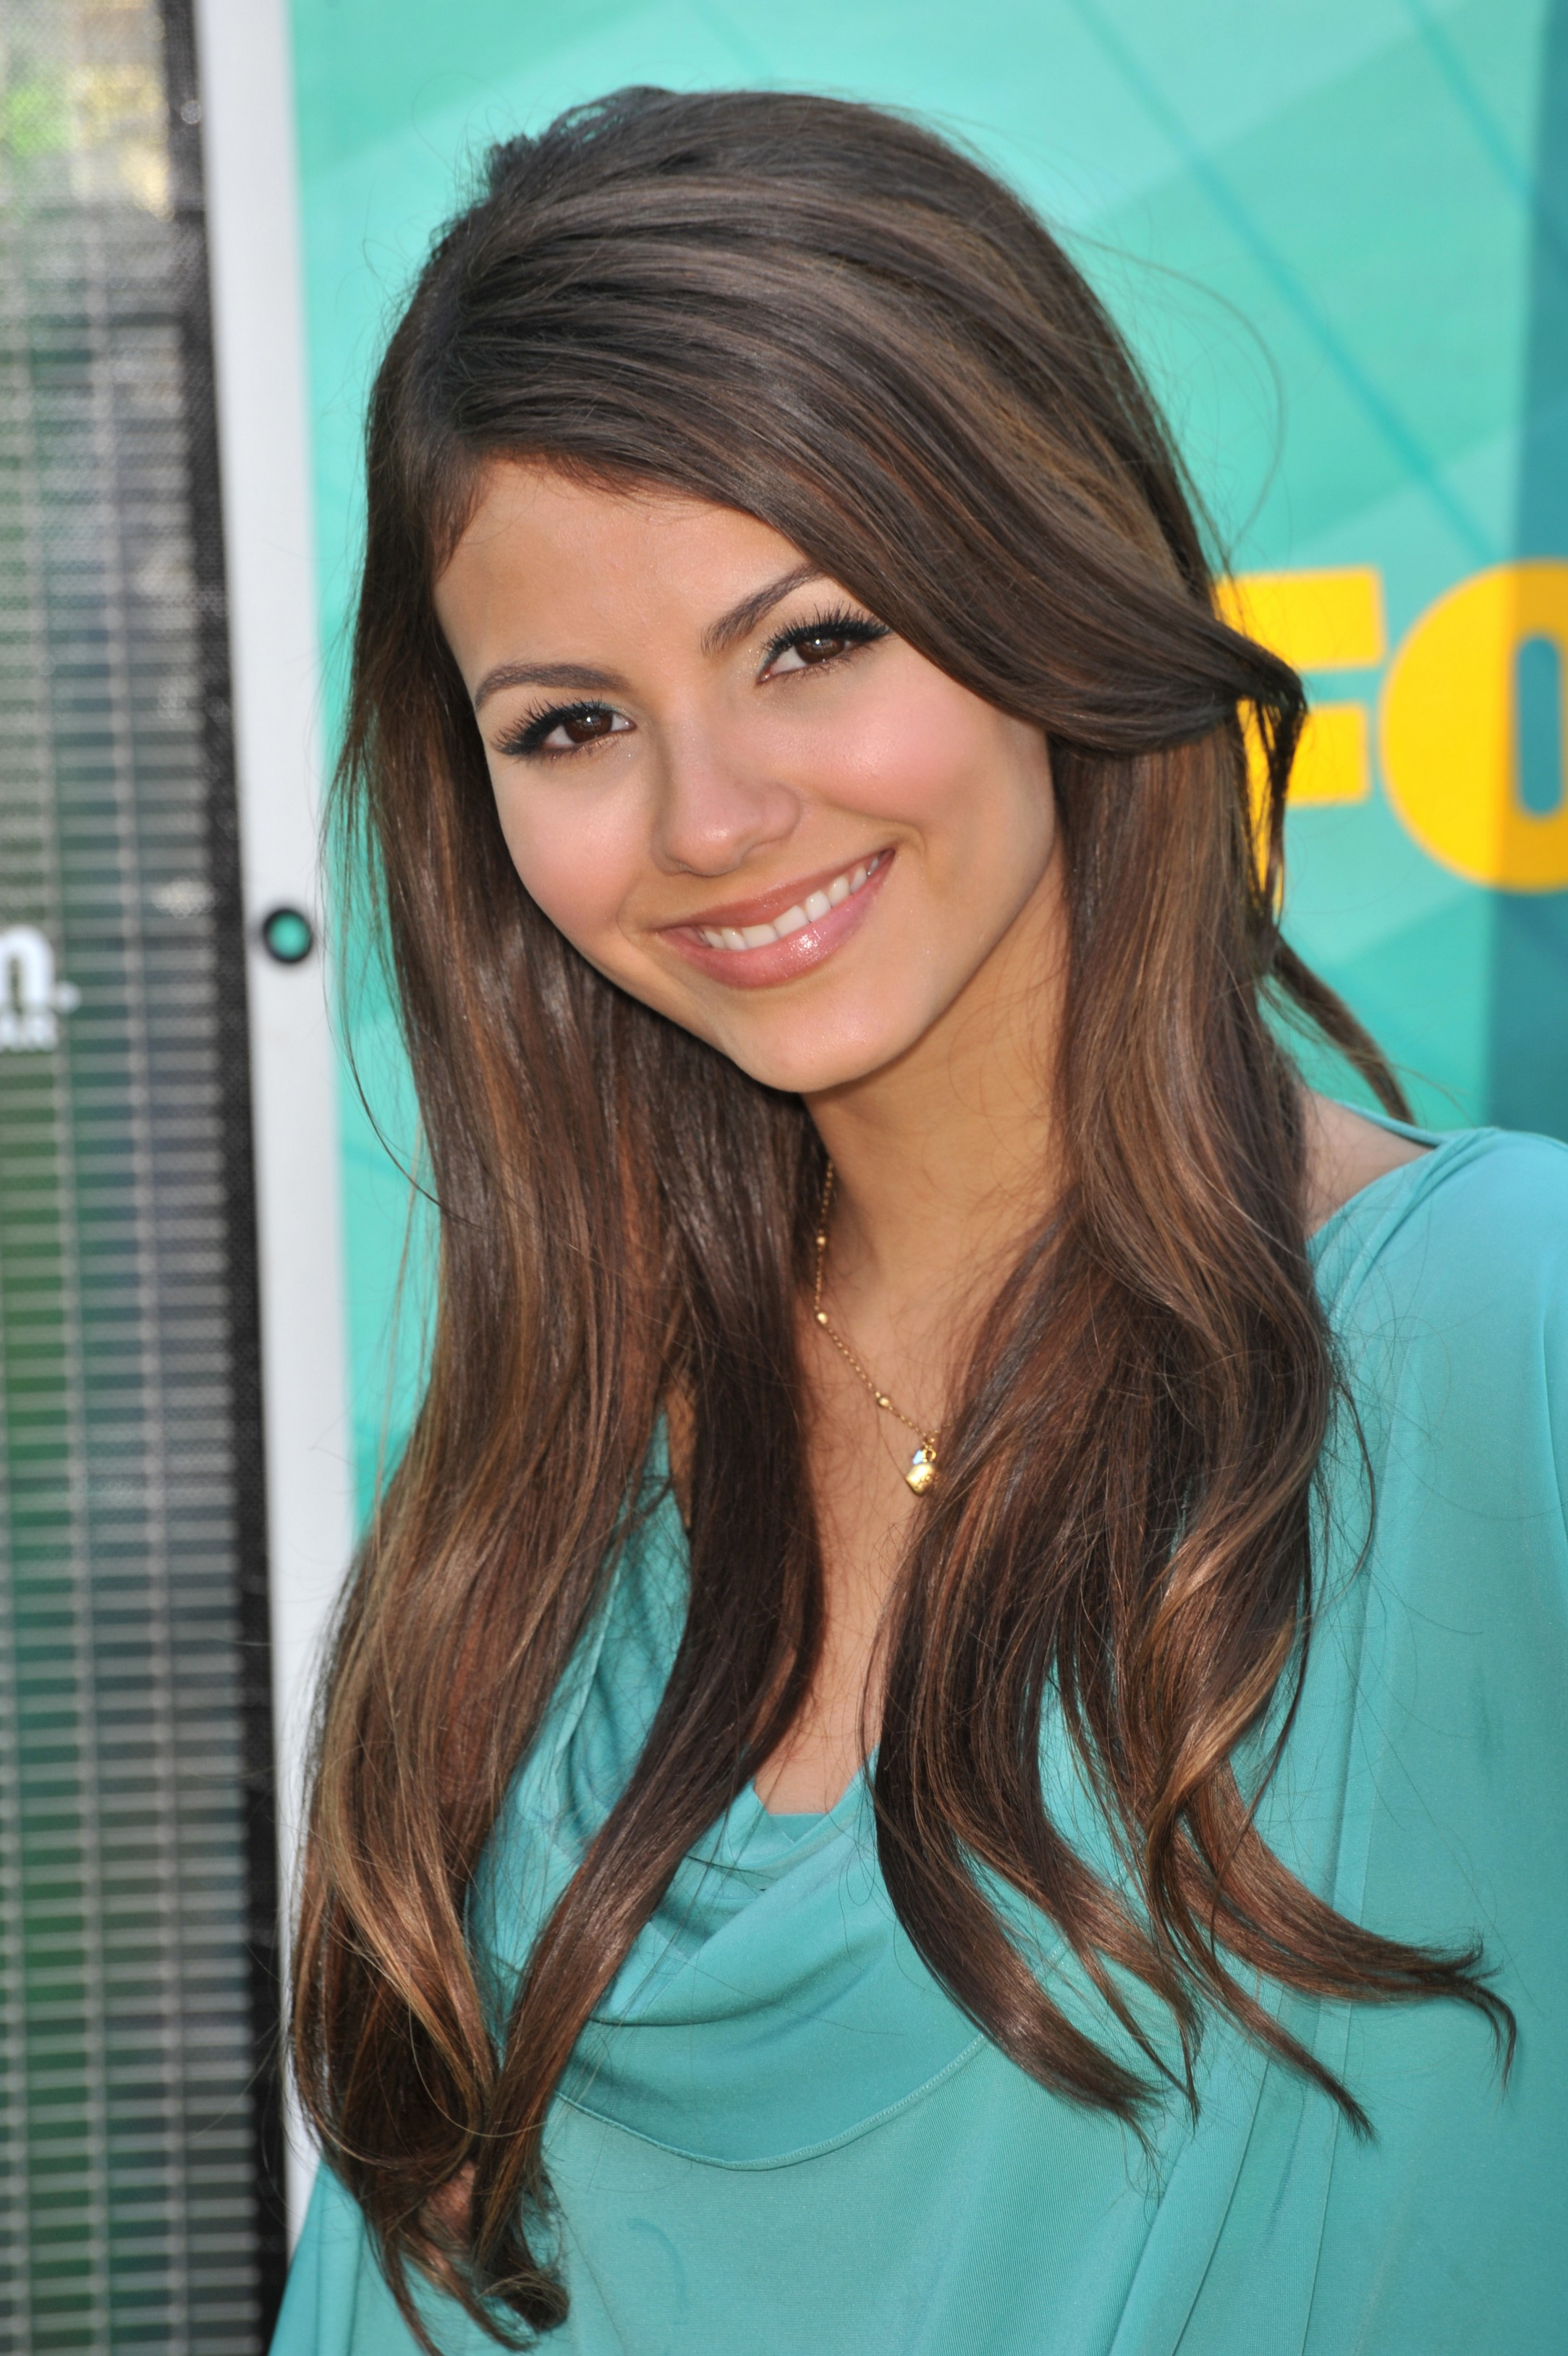 Victoria justice teen choice 2009 leaked celebrity photos space